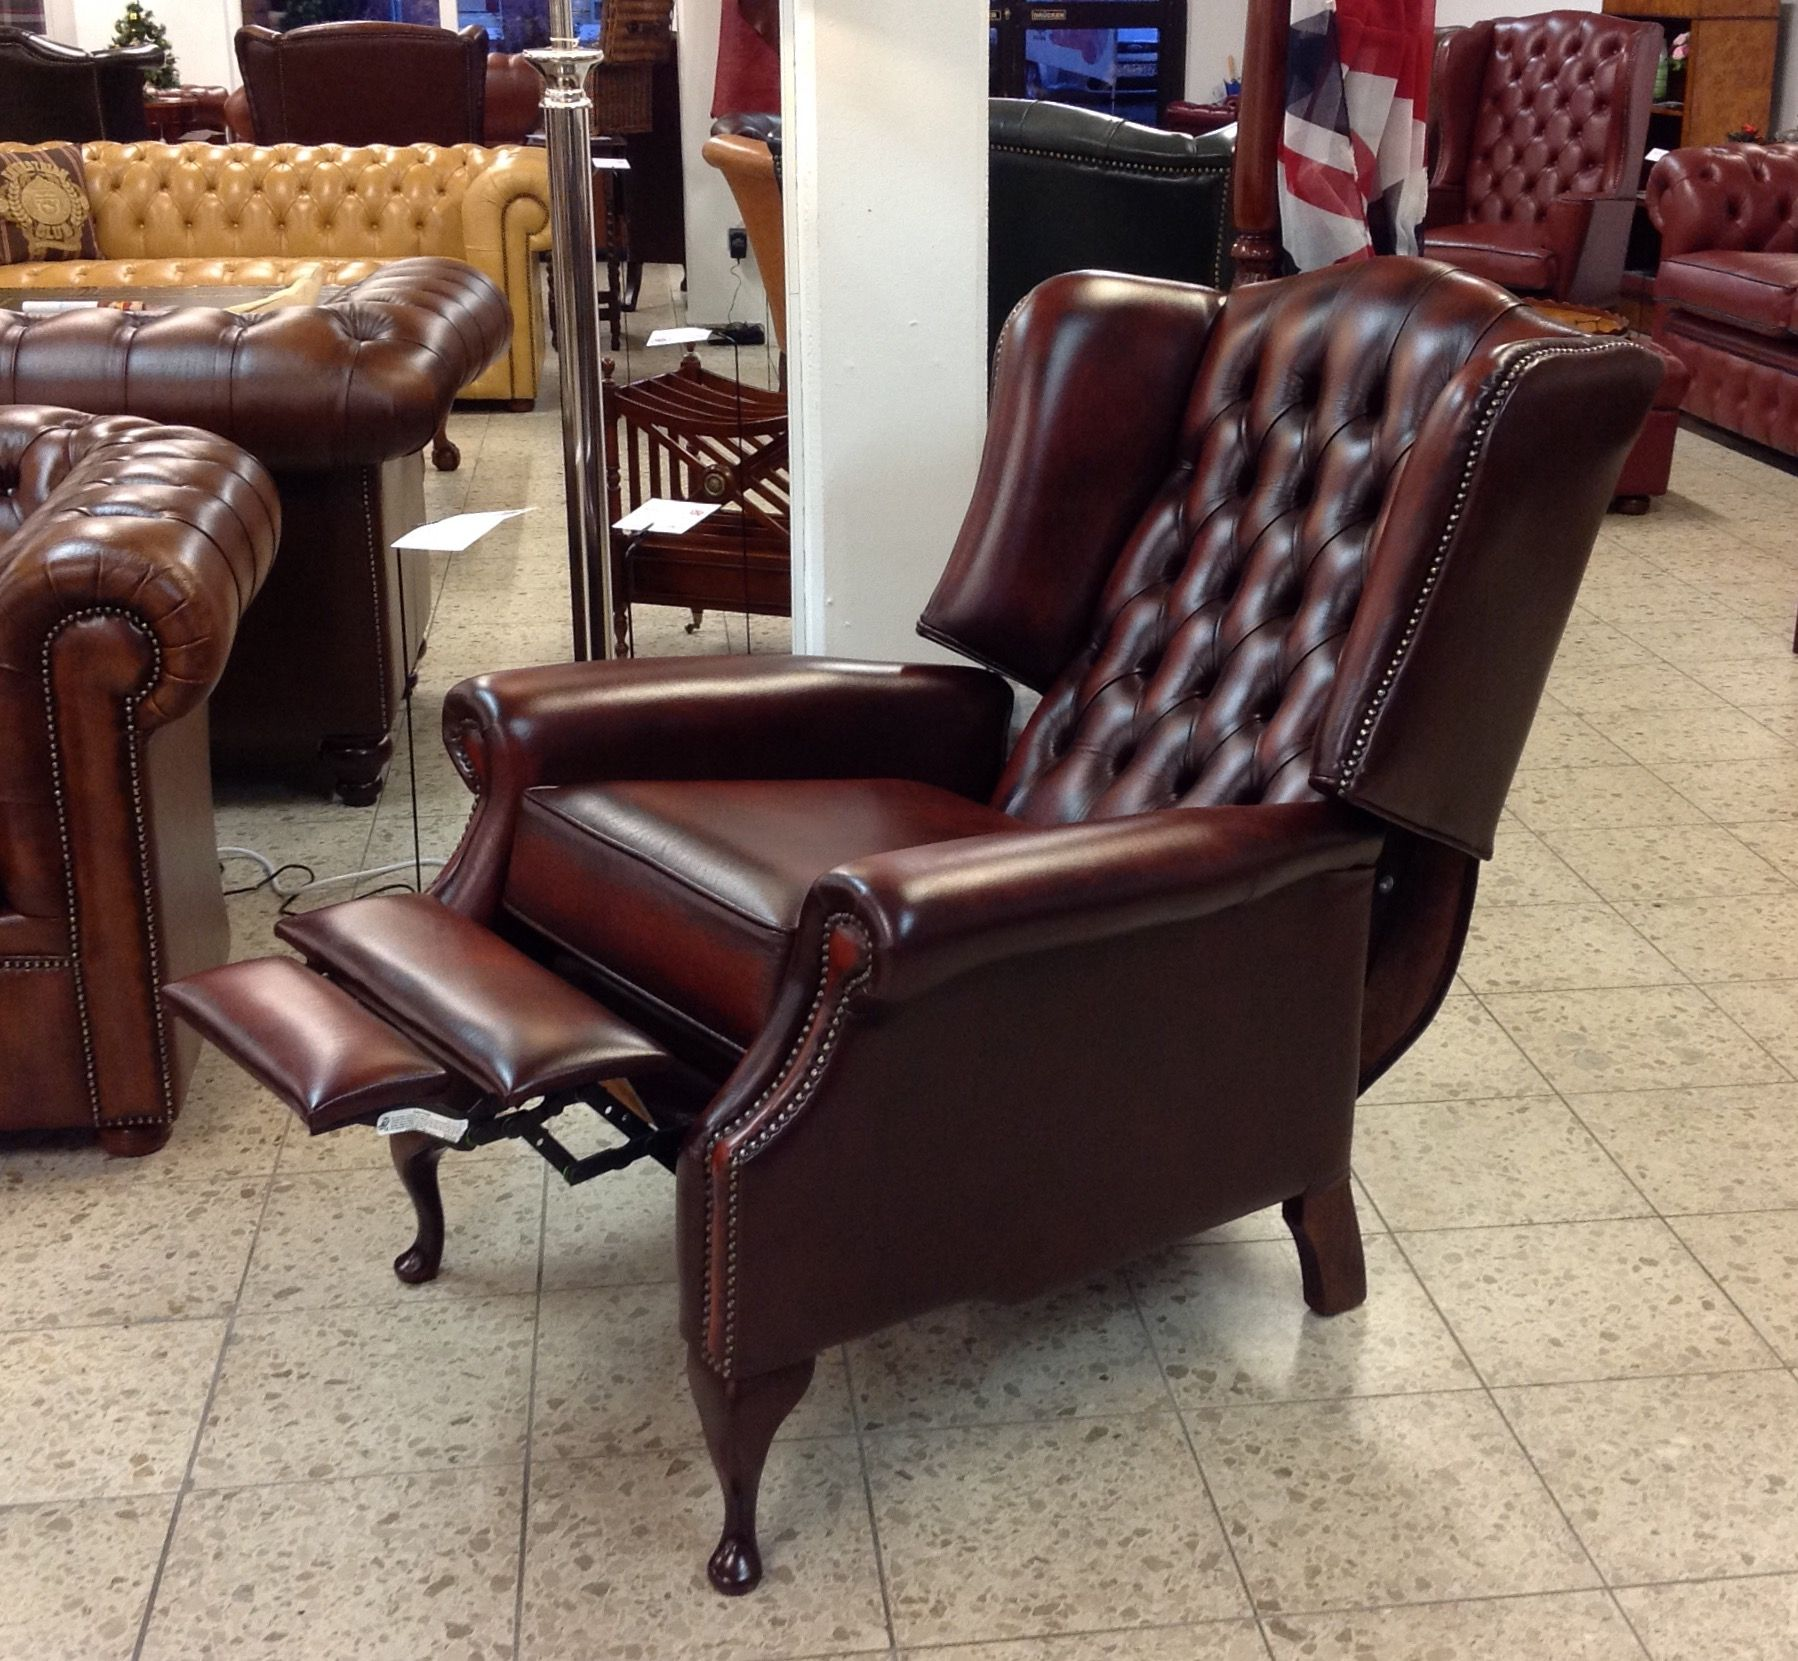 Verstellbare Sessel Wing Chair Als Verstellbarer Tv Sessel Furniture I Want